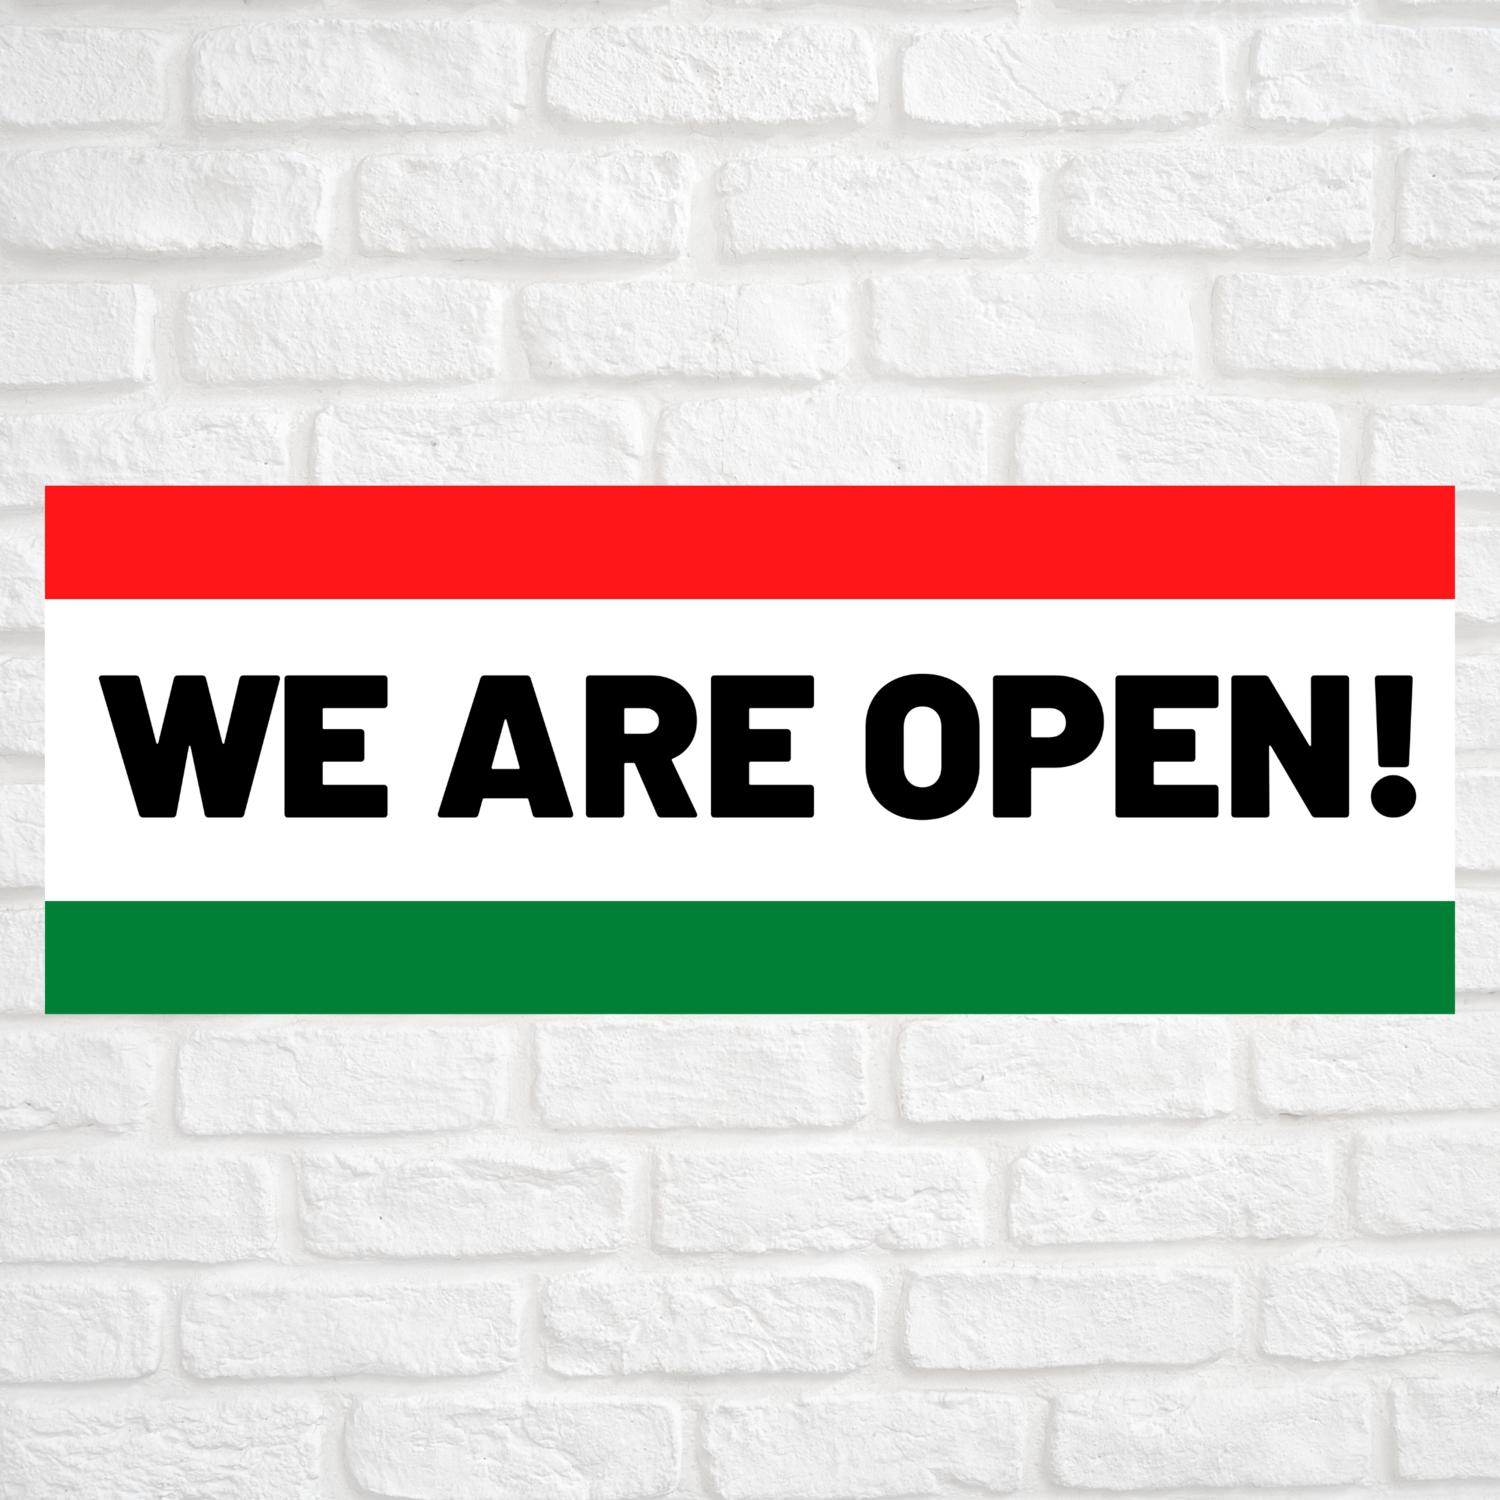 We Are Open! Red/Green